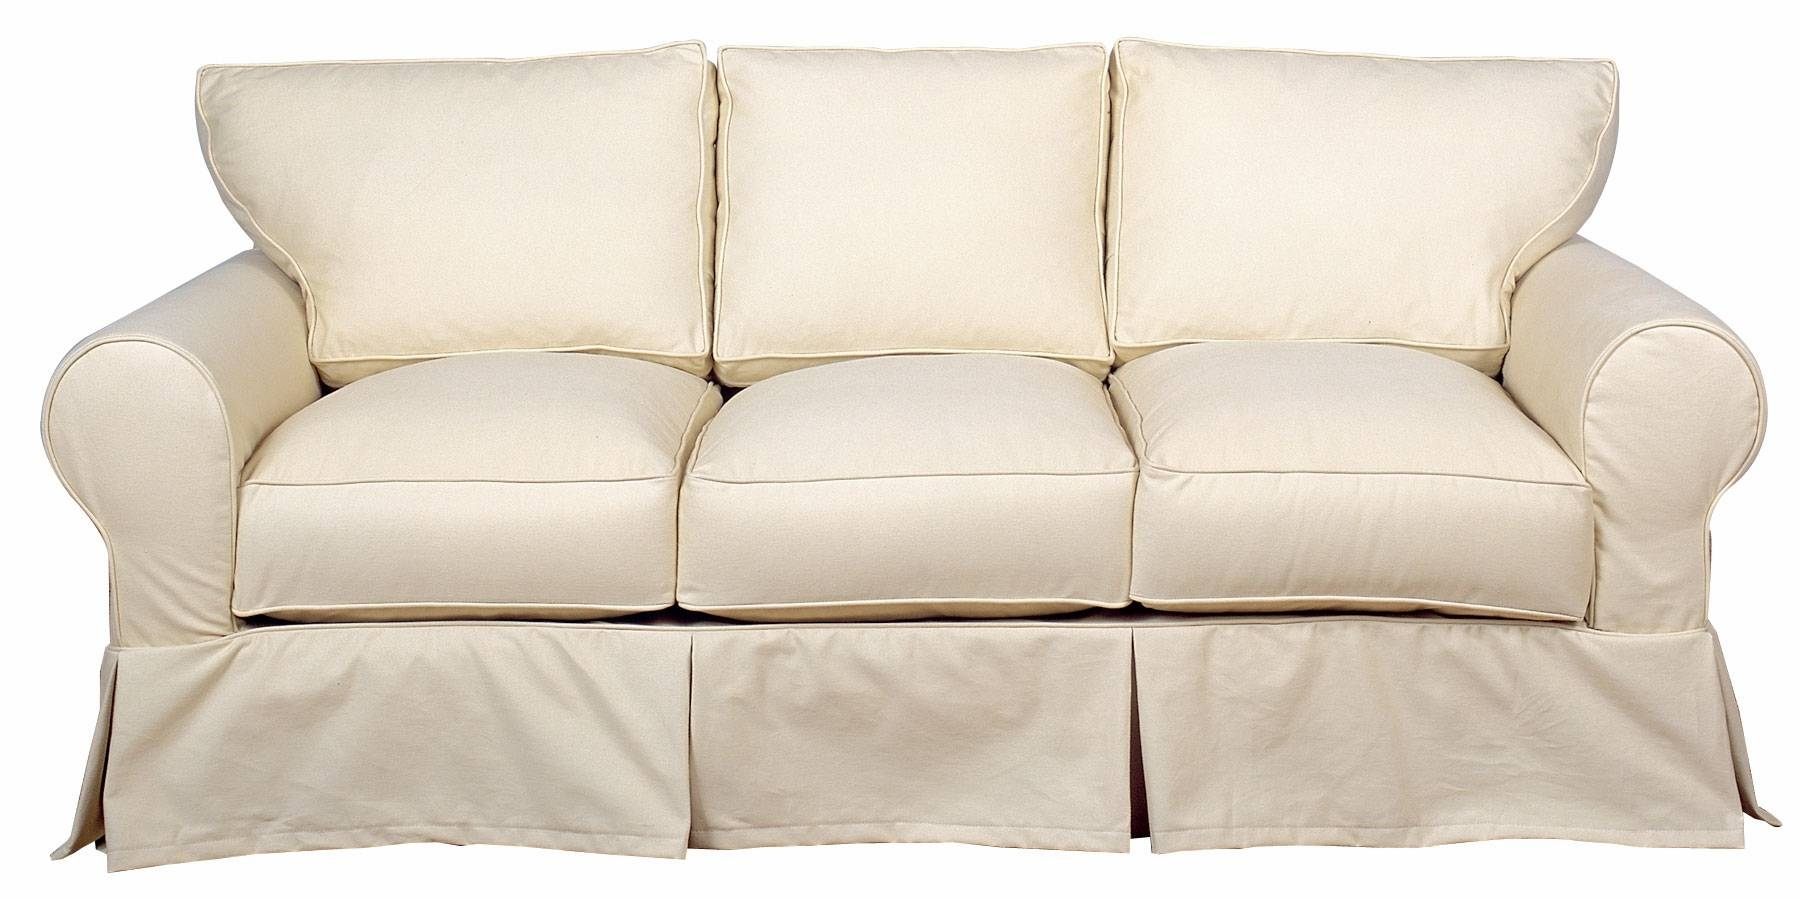 Featured Photo of Slipcovers For 3 Cushion Sofas